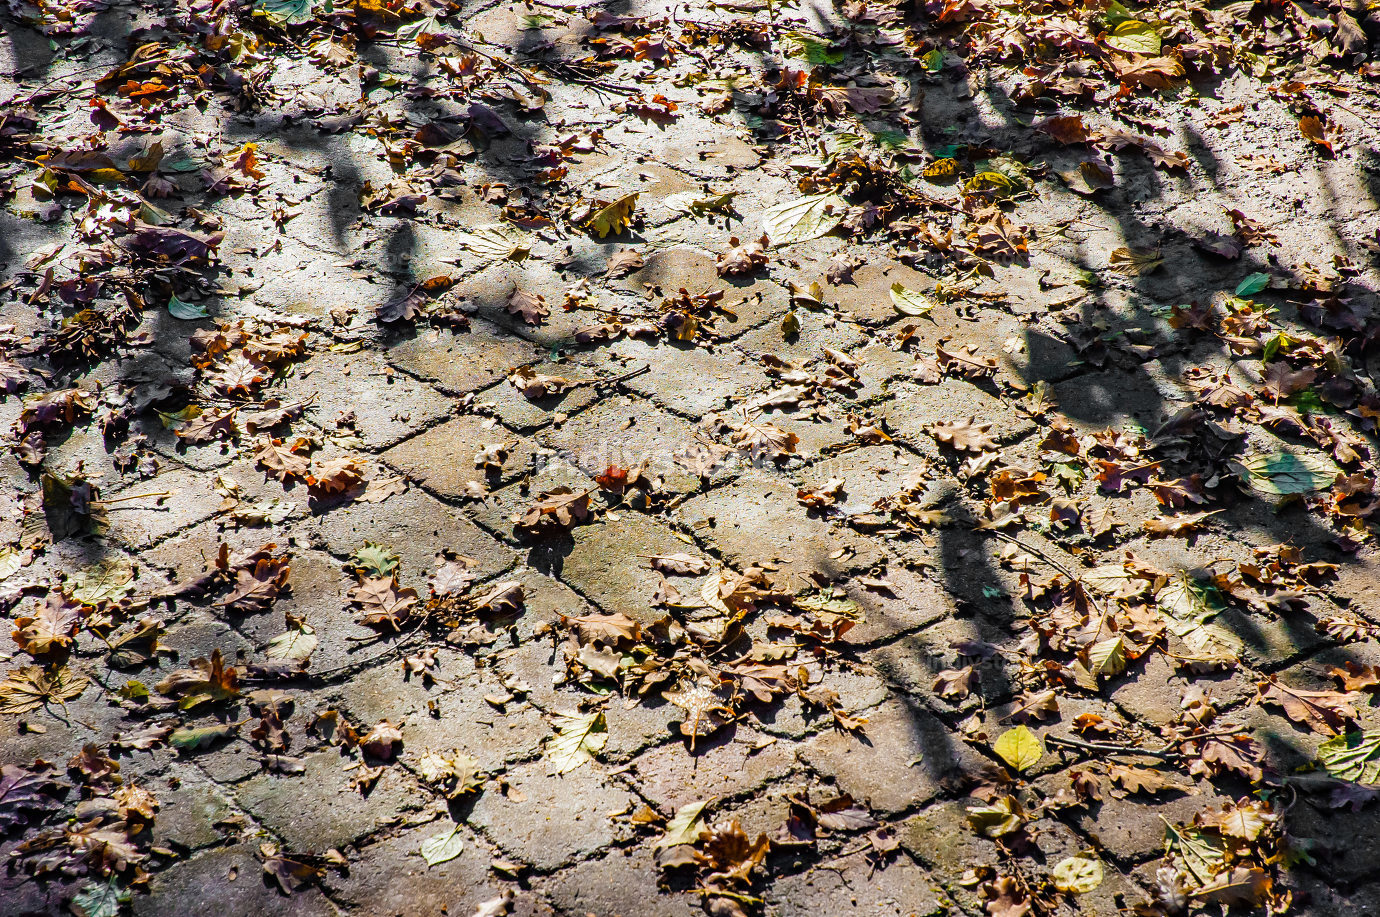 Cobblestones covered by leaves